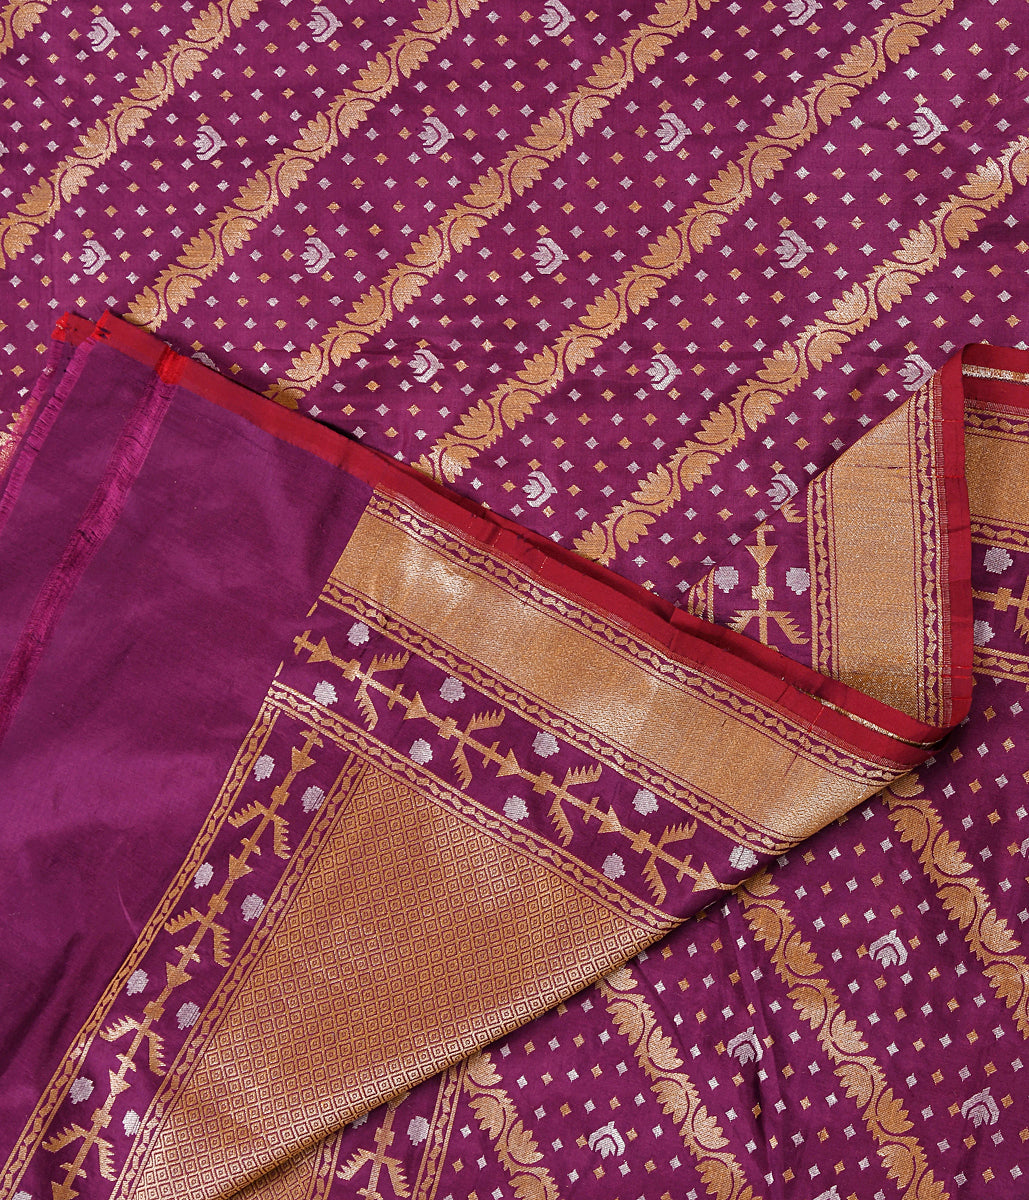 Handwoven Purple Katan Silk Dupatta with Jamdani Weave